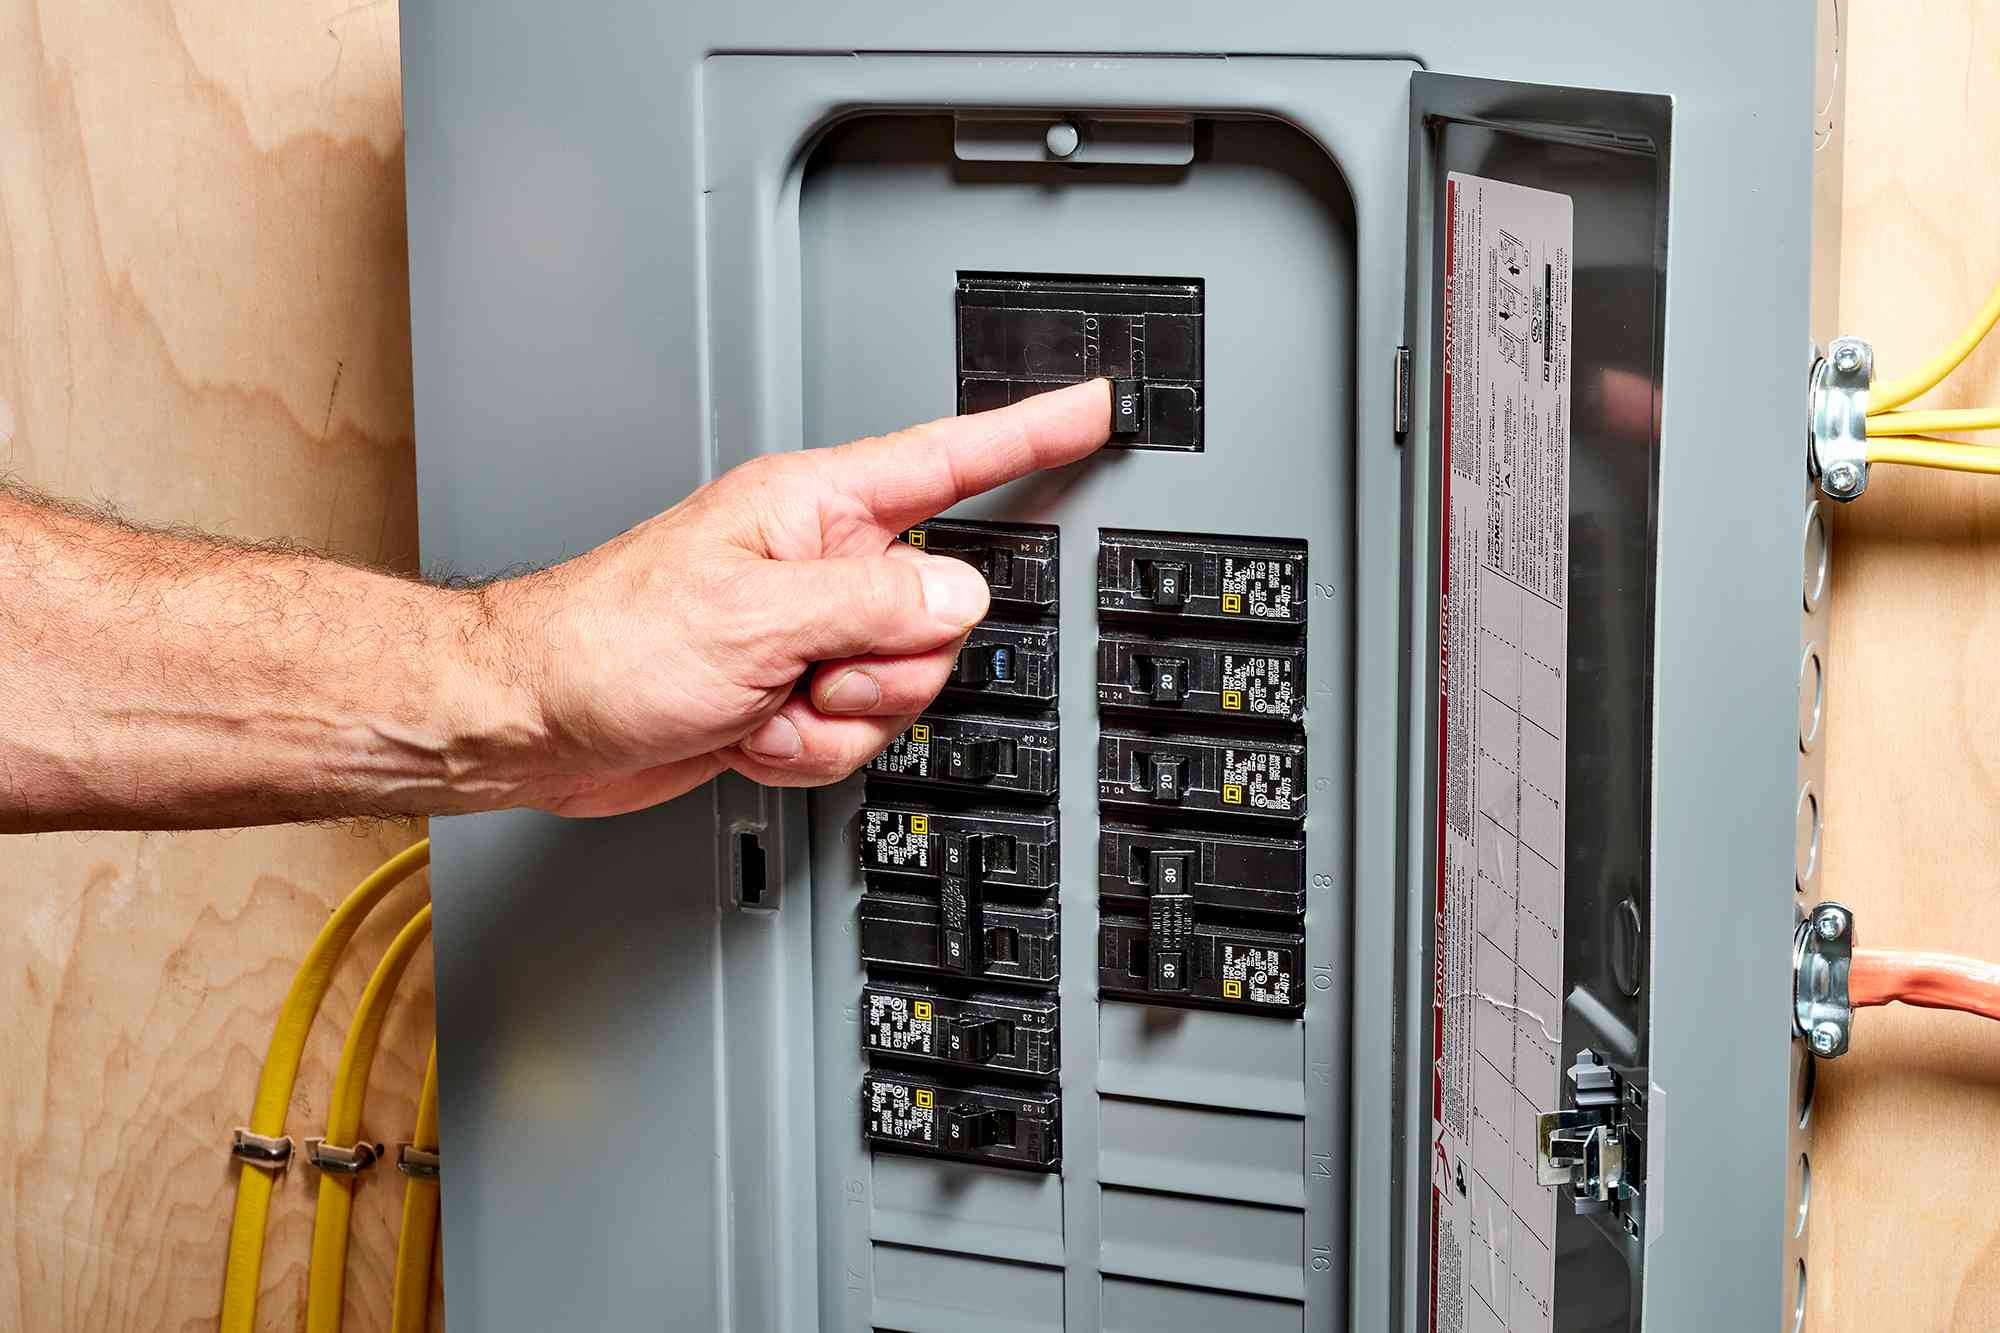 Main breaker switch turned on before powering on circuit breaker switches